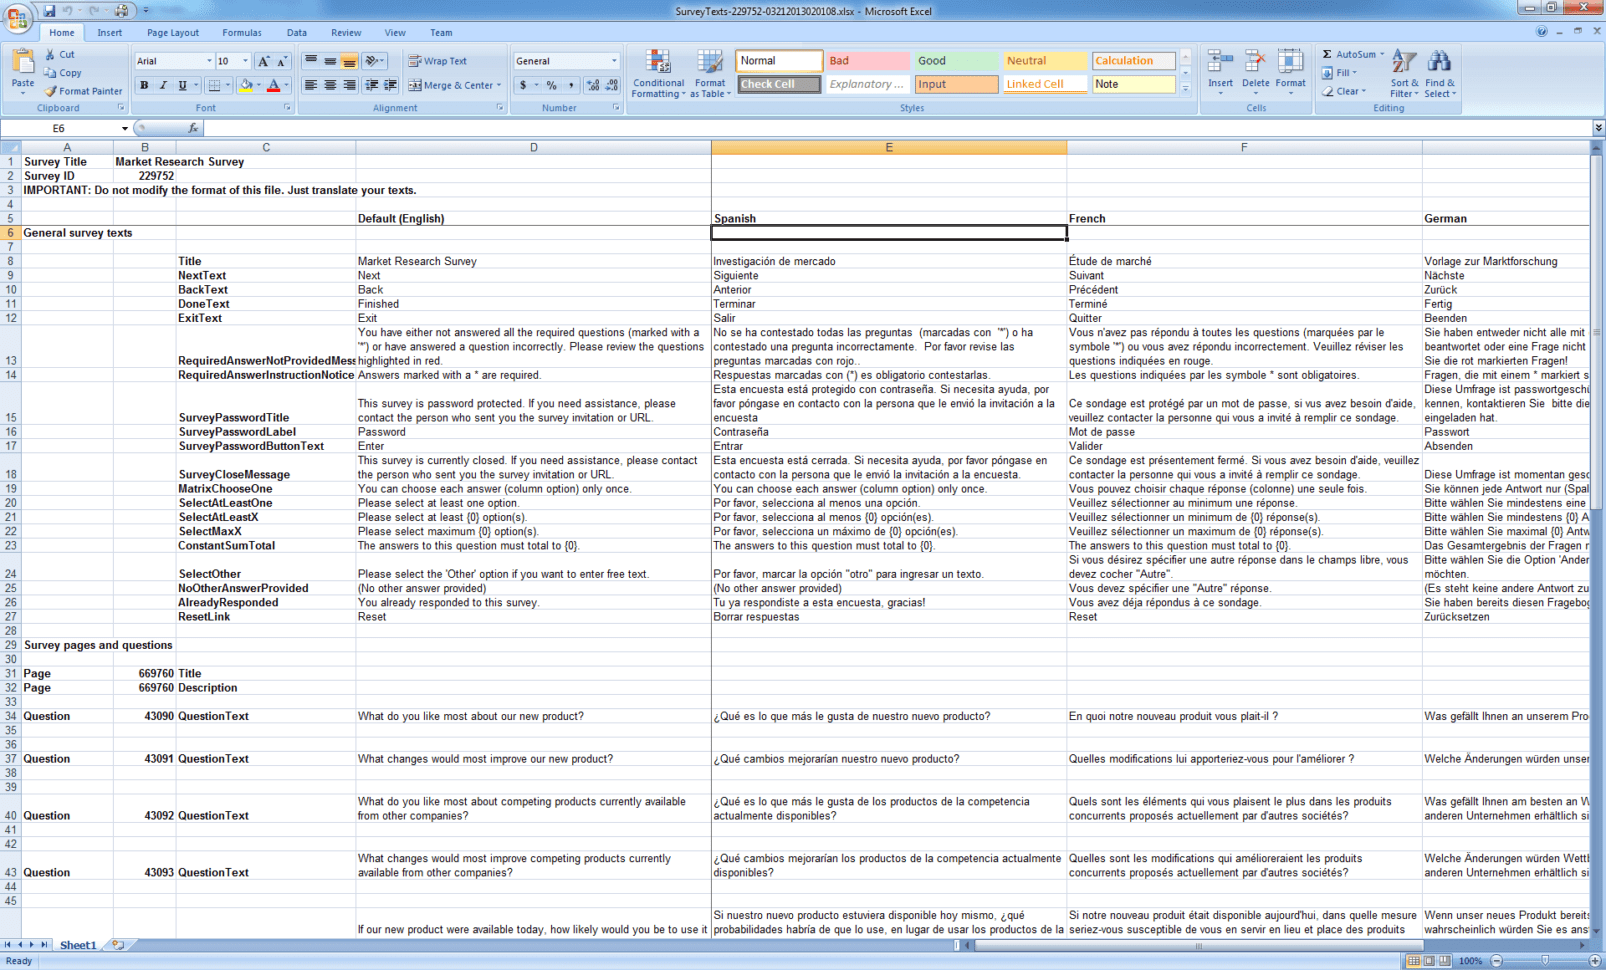 Customer Survey Template Word Free Survey Template Customer Spreadsheet Template Survey Tracker Spreadsheet Online Survey Data Excel Template Excel Spreadsheet For Survey Results Sample Excel Survey Template  Excel Survey Template With Option Buttons Survey Spreadsheet Template Spreadsheet Templates for Busines